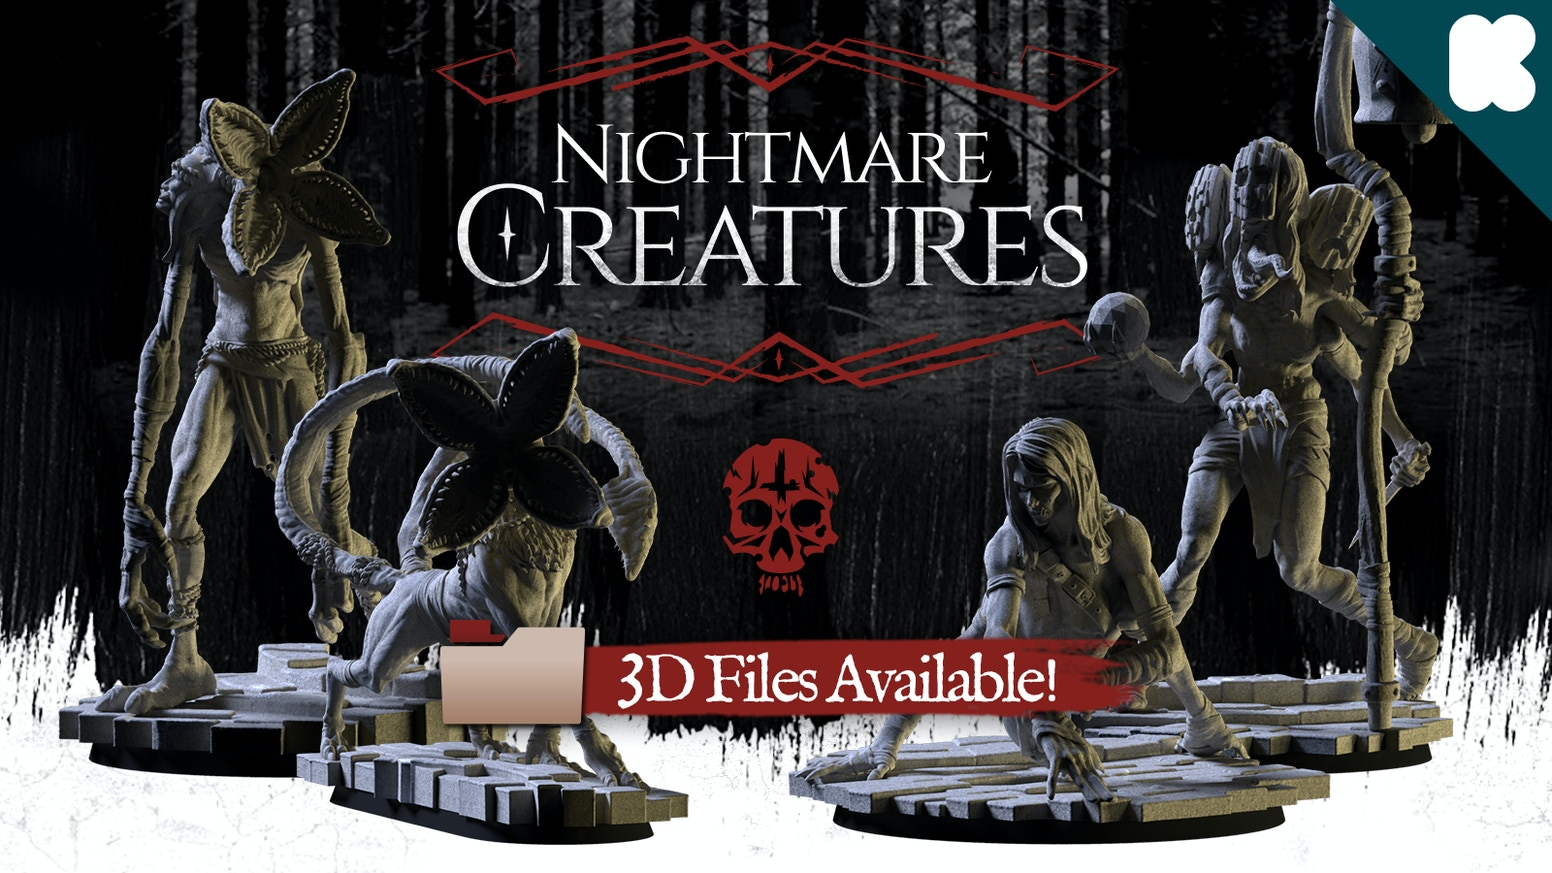 Nightmare Creatures consists in a set of 4 miniatures made with high quality resin, inspired in our deeper terrors.